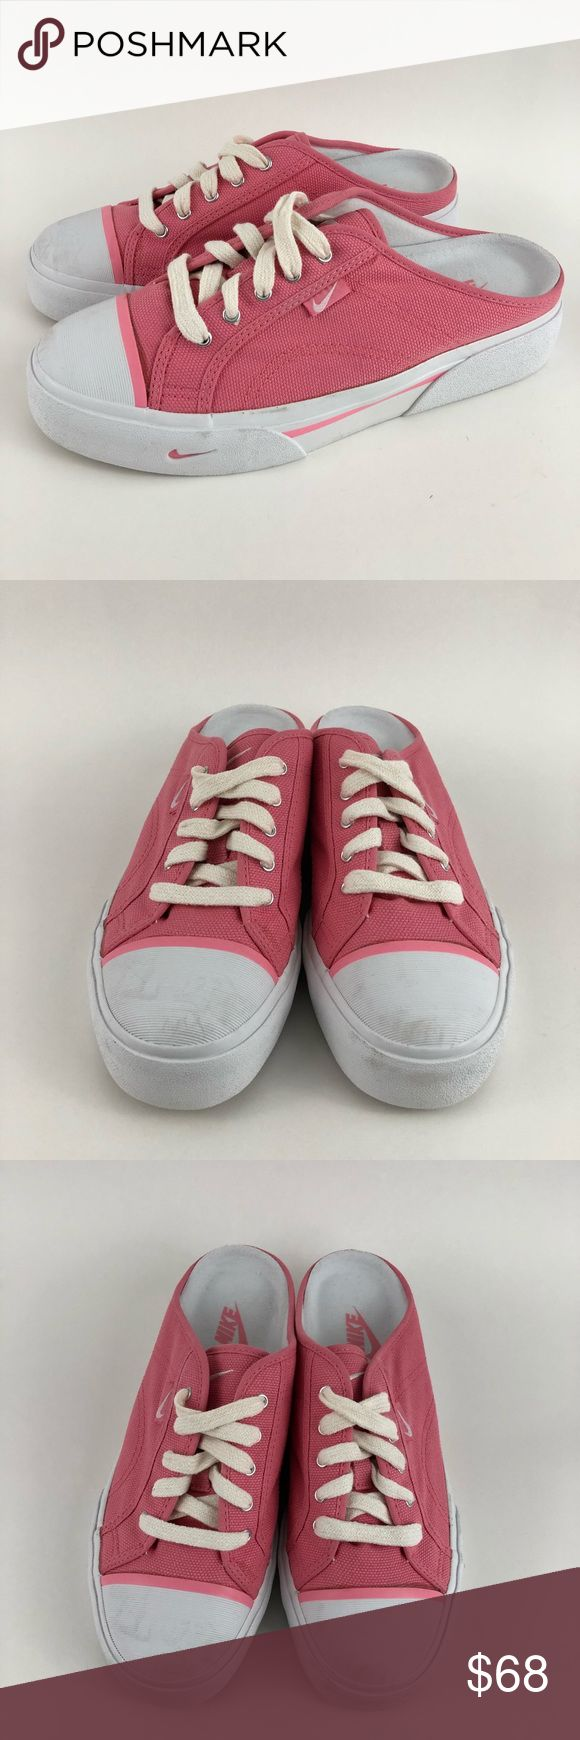 Nike Hermosa, pink old school slip on sneakers Nike hermosa slip on sneakers, mules. Pink with white toe and soles. Rare, old school, early 2000's. Just a couple dirt spots on the white, see pics. Nike Shoes Sneakers